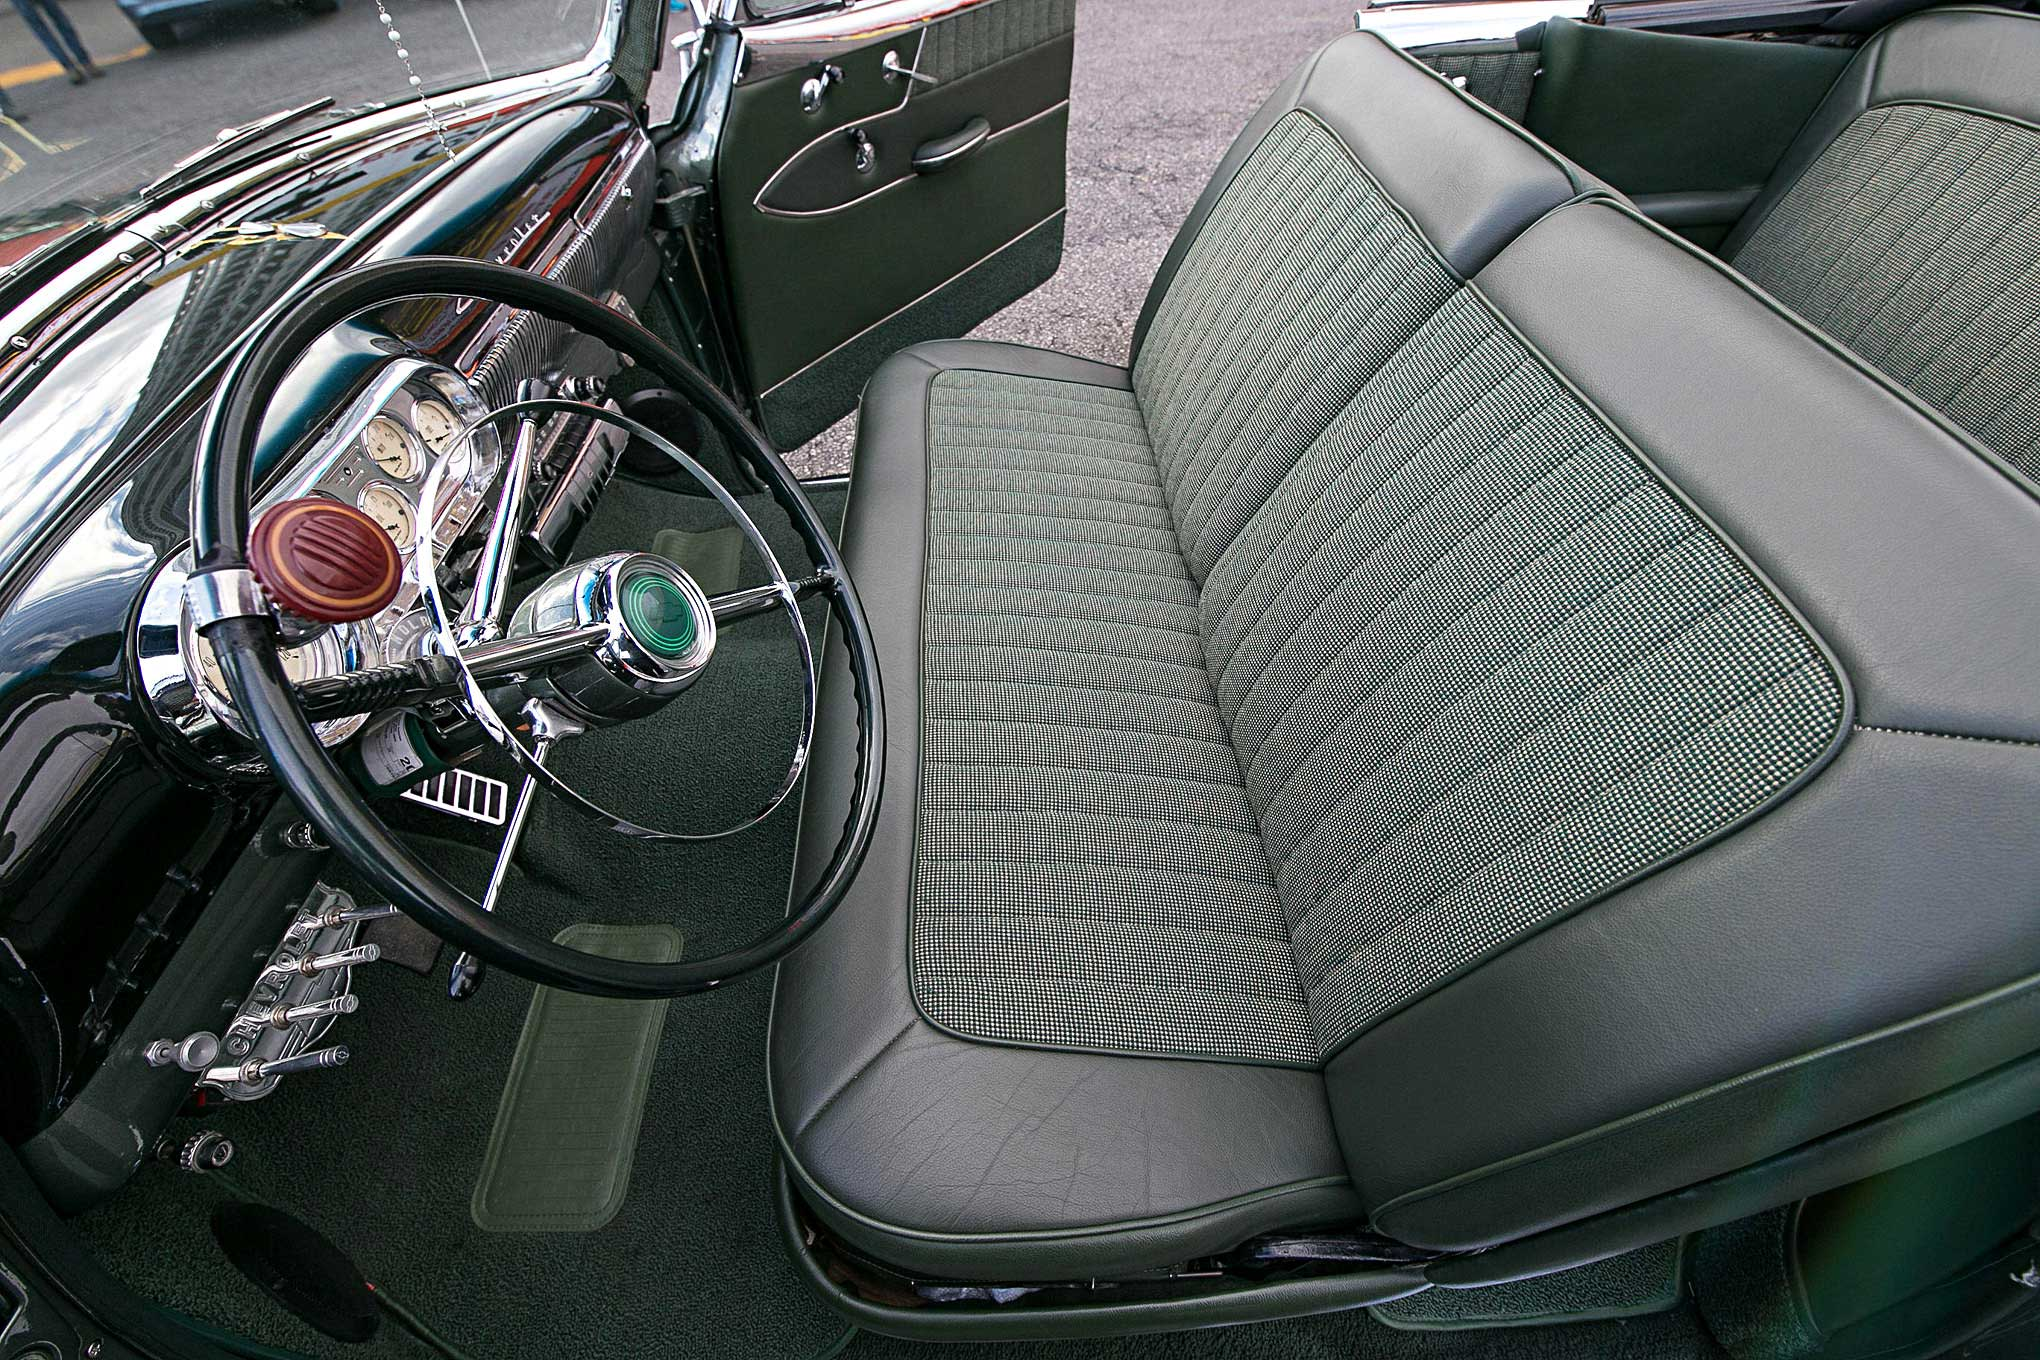 Pleasant 1953 Chevrolet Bel Air Bench Seat Lowrider Machost Co Dining Chair Design Ideas Machostcouk